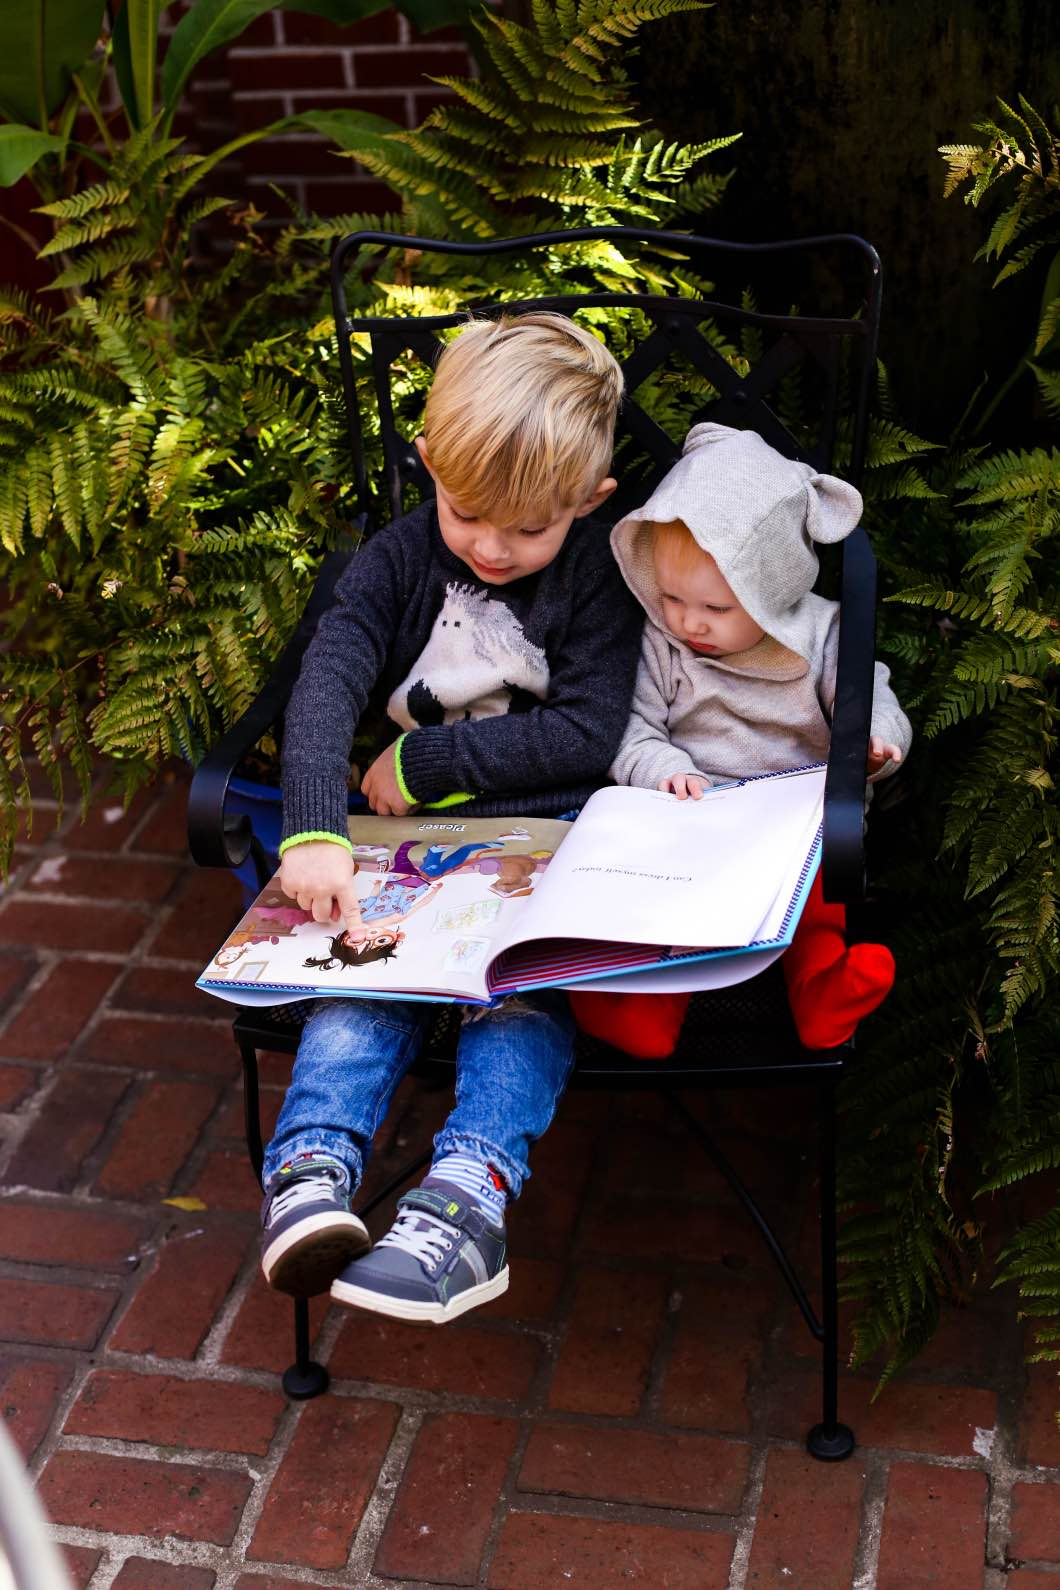 Kids Reading Together Give Please a Chance